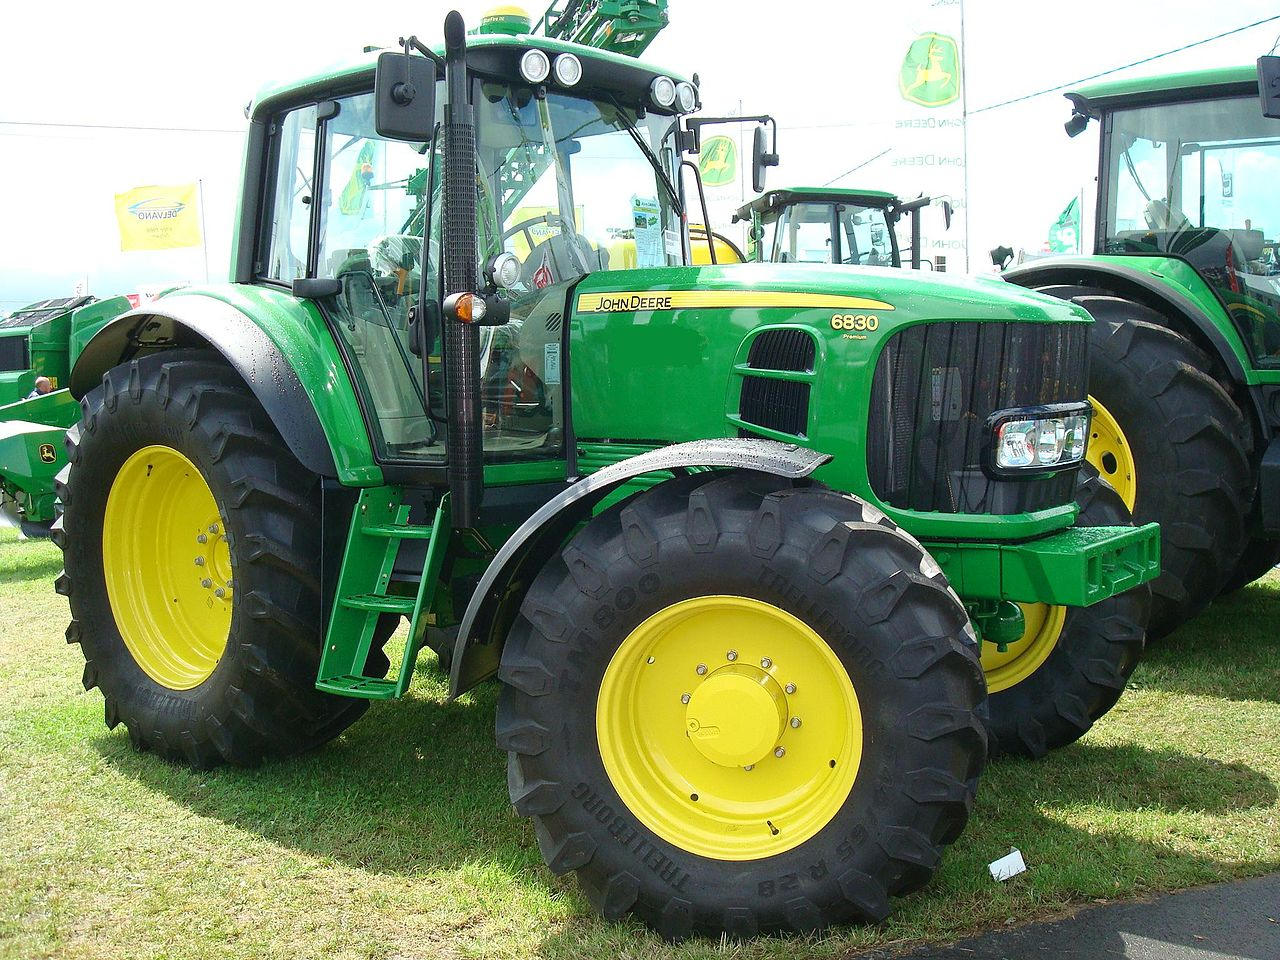 file traktor john deere 6830 premium jpg wikimedia commons. Black Bedroom Furniture Sets. Home Design Ideas